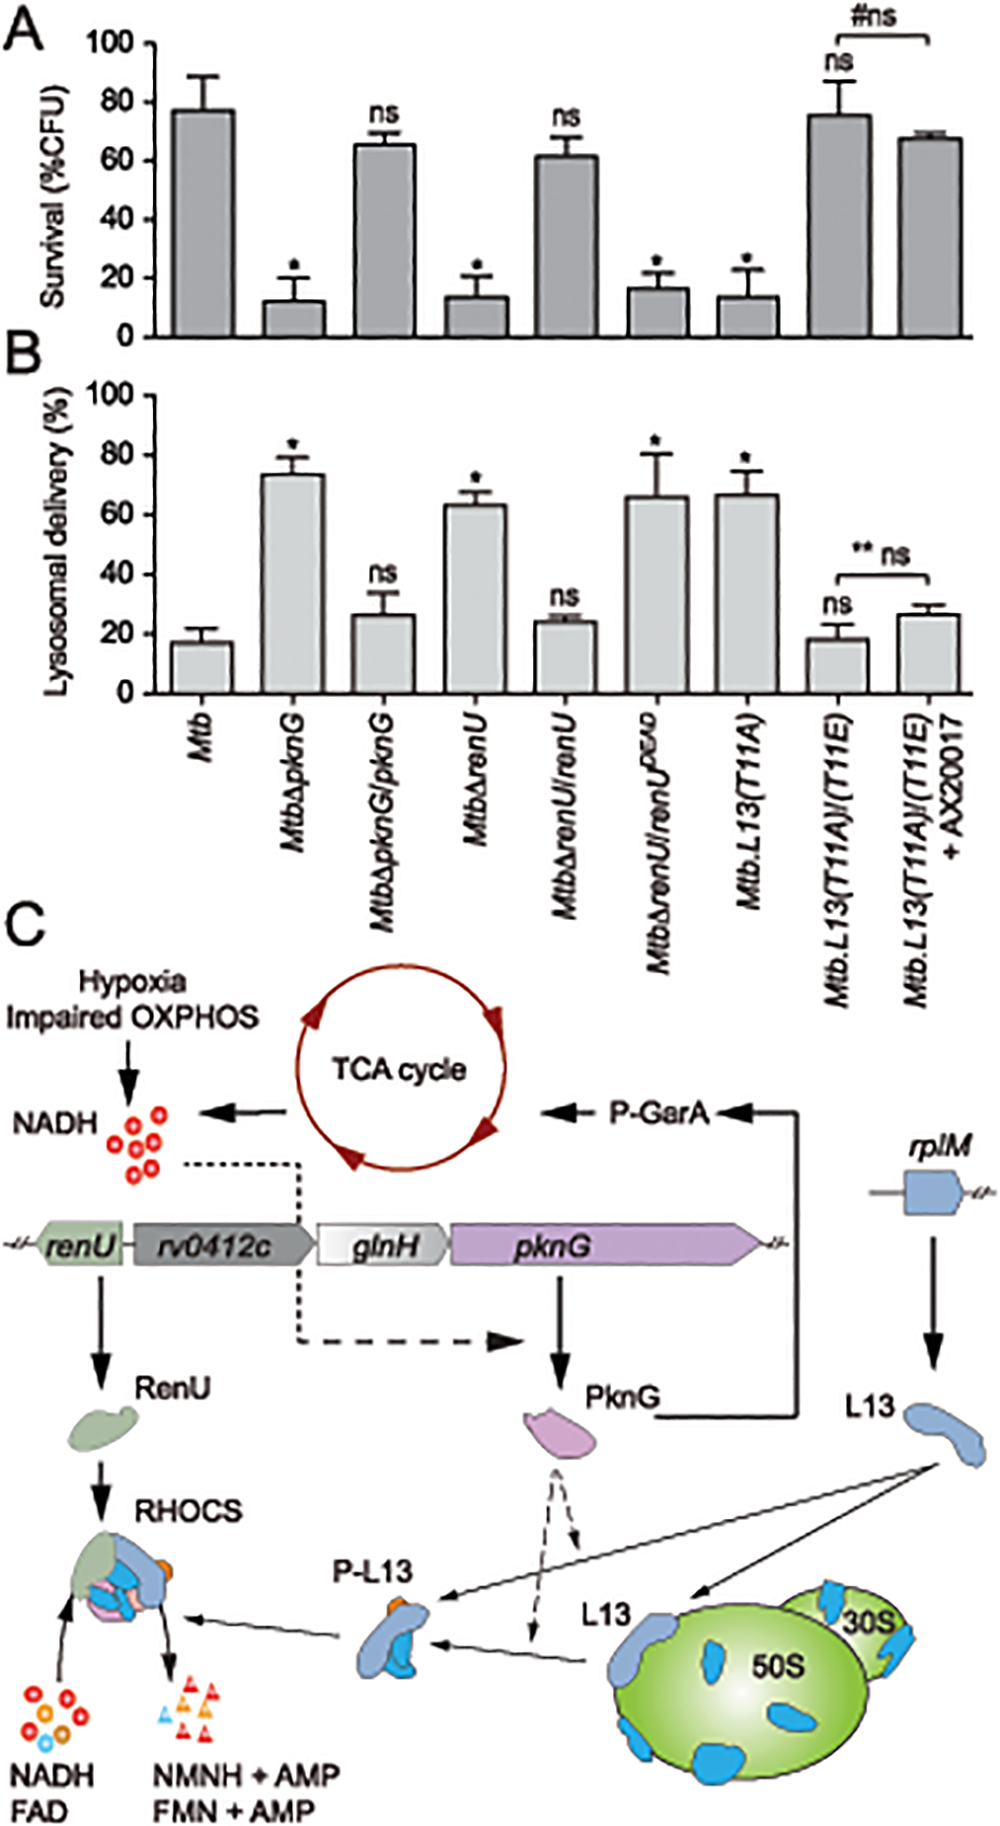 Intracellular trafficking and survival of <i>M</i>. <i>tuberculosis</i> RHOCS mutants.